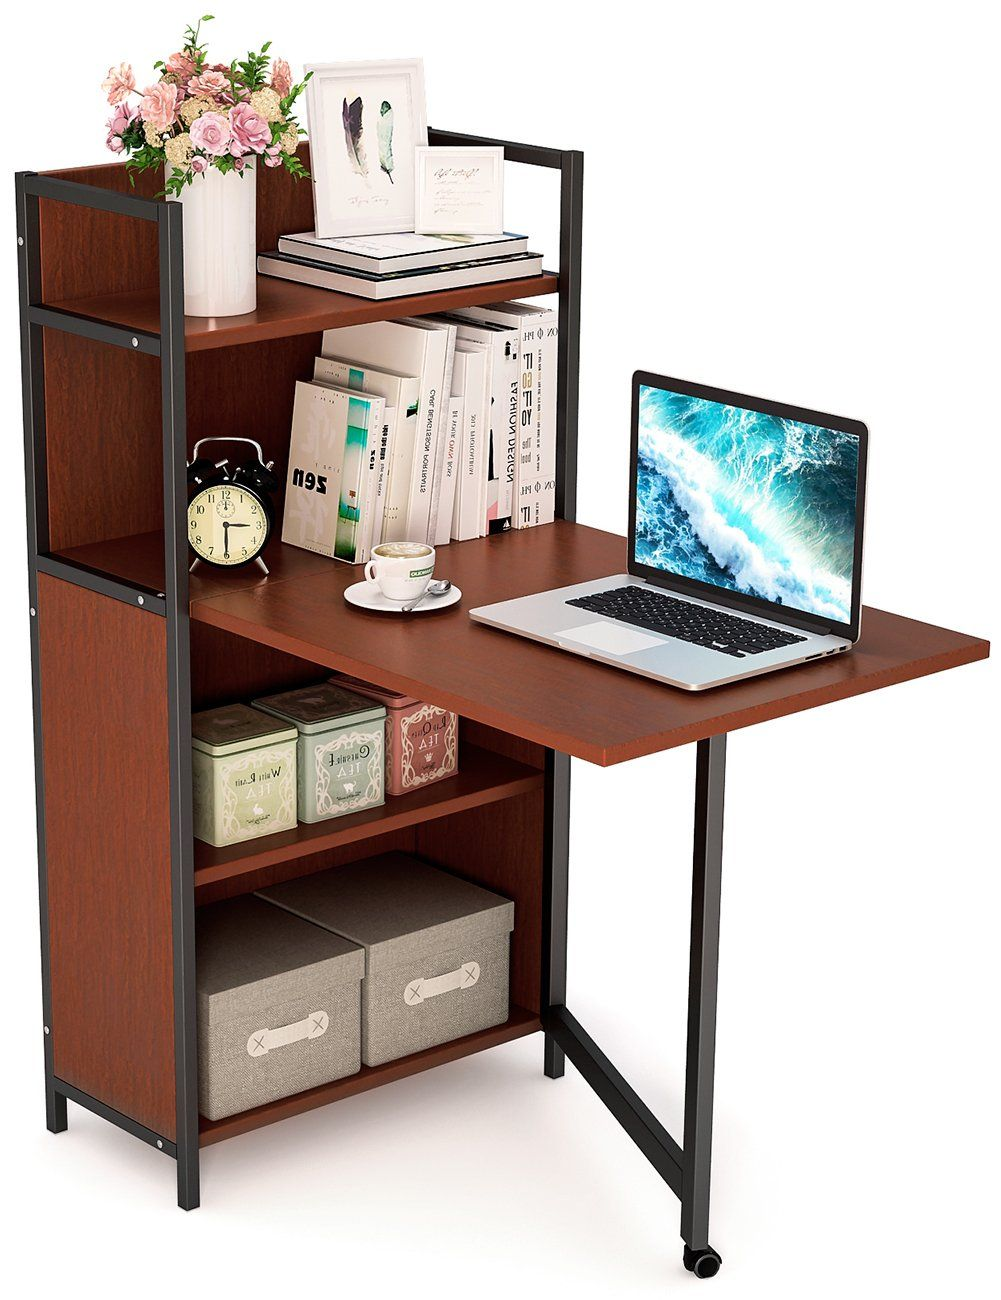 Tribesigns Folding Computer Desk With Bookshelves, PC Laptop Study Writing  Desk With Storage Shelves For